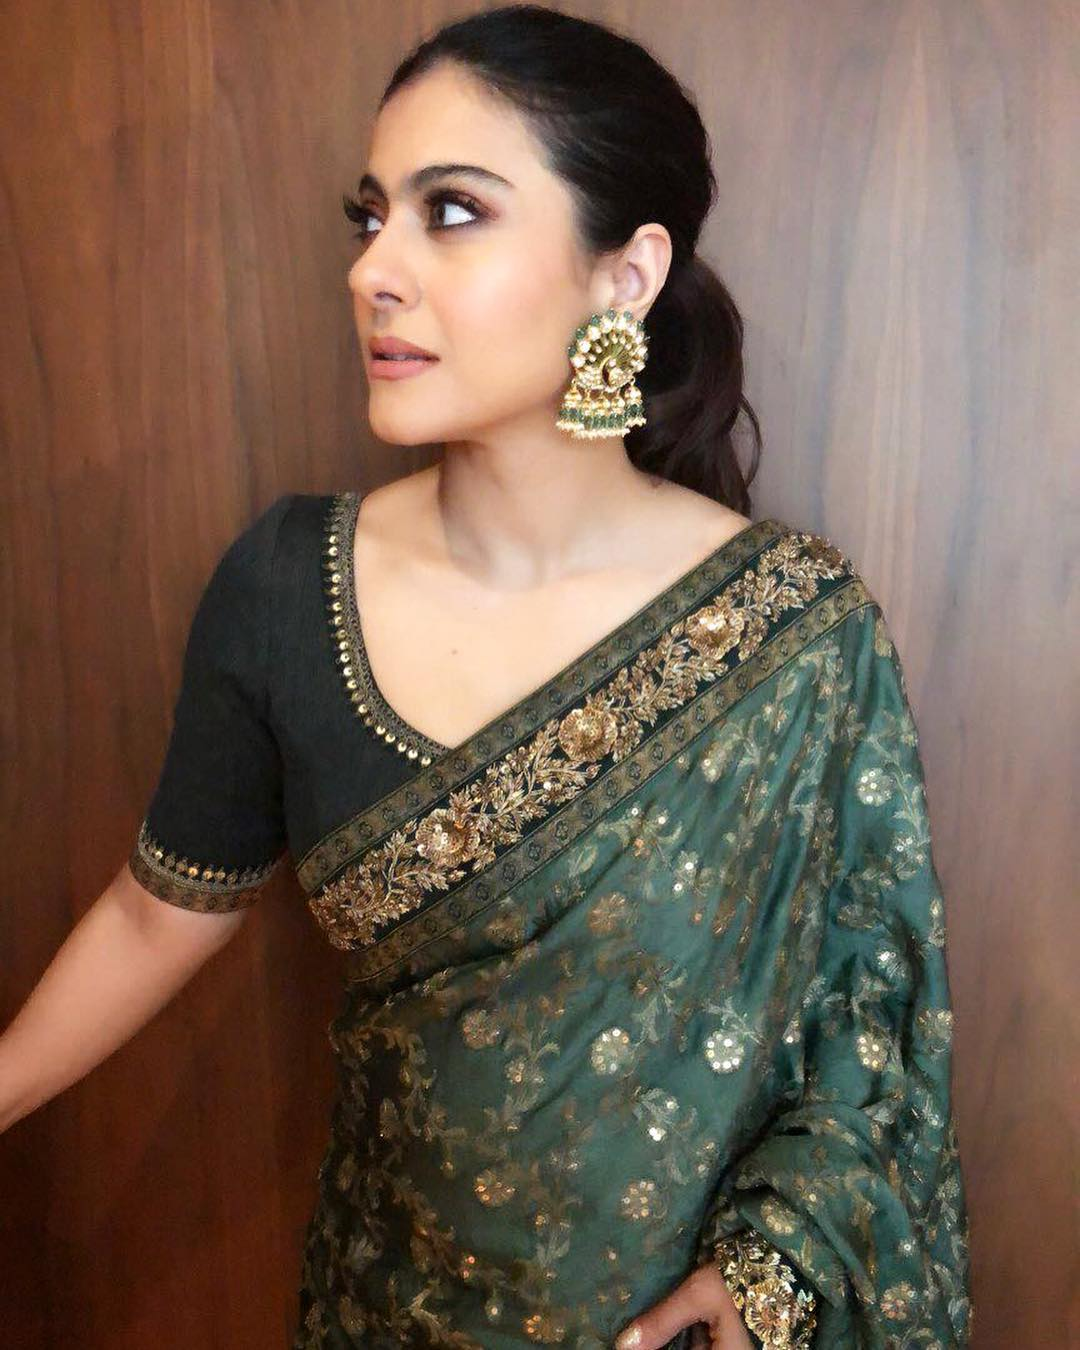 6 one thing we want from kajol's closet